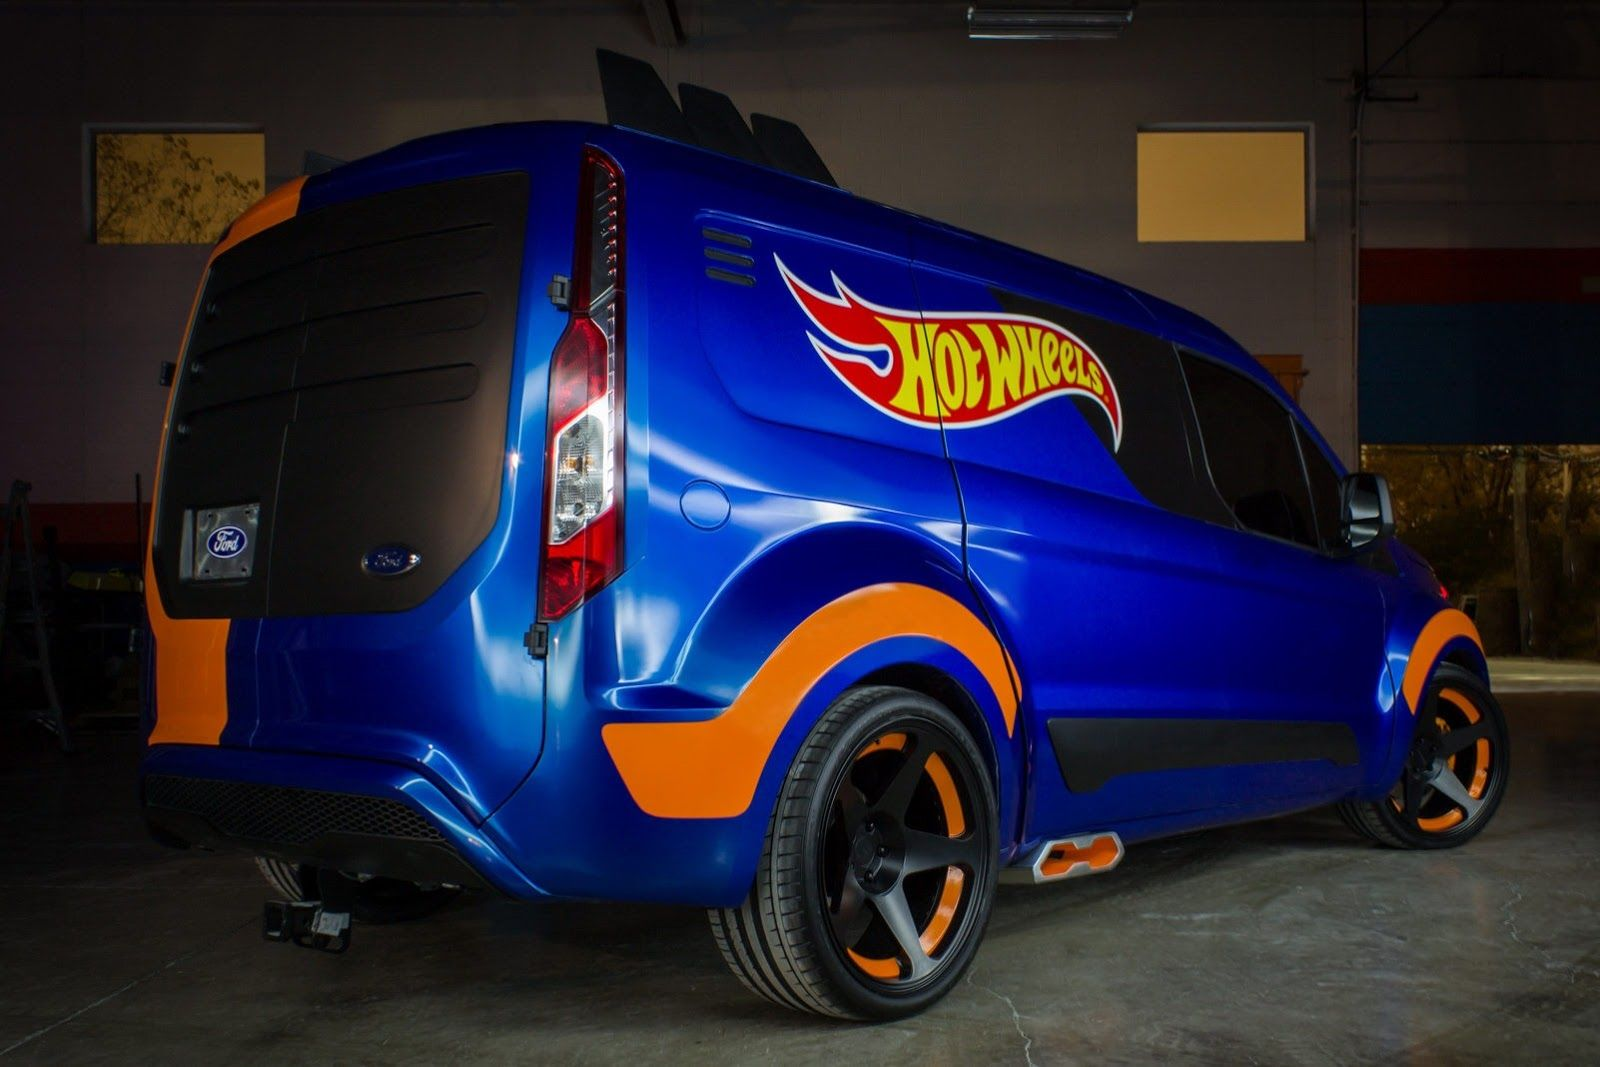 Ford transit connect hot wheels ford revealed at the 2013 sema show a transit connect concept inspired by a hot wheels scale model